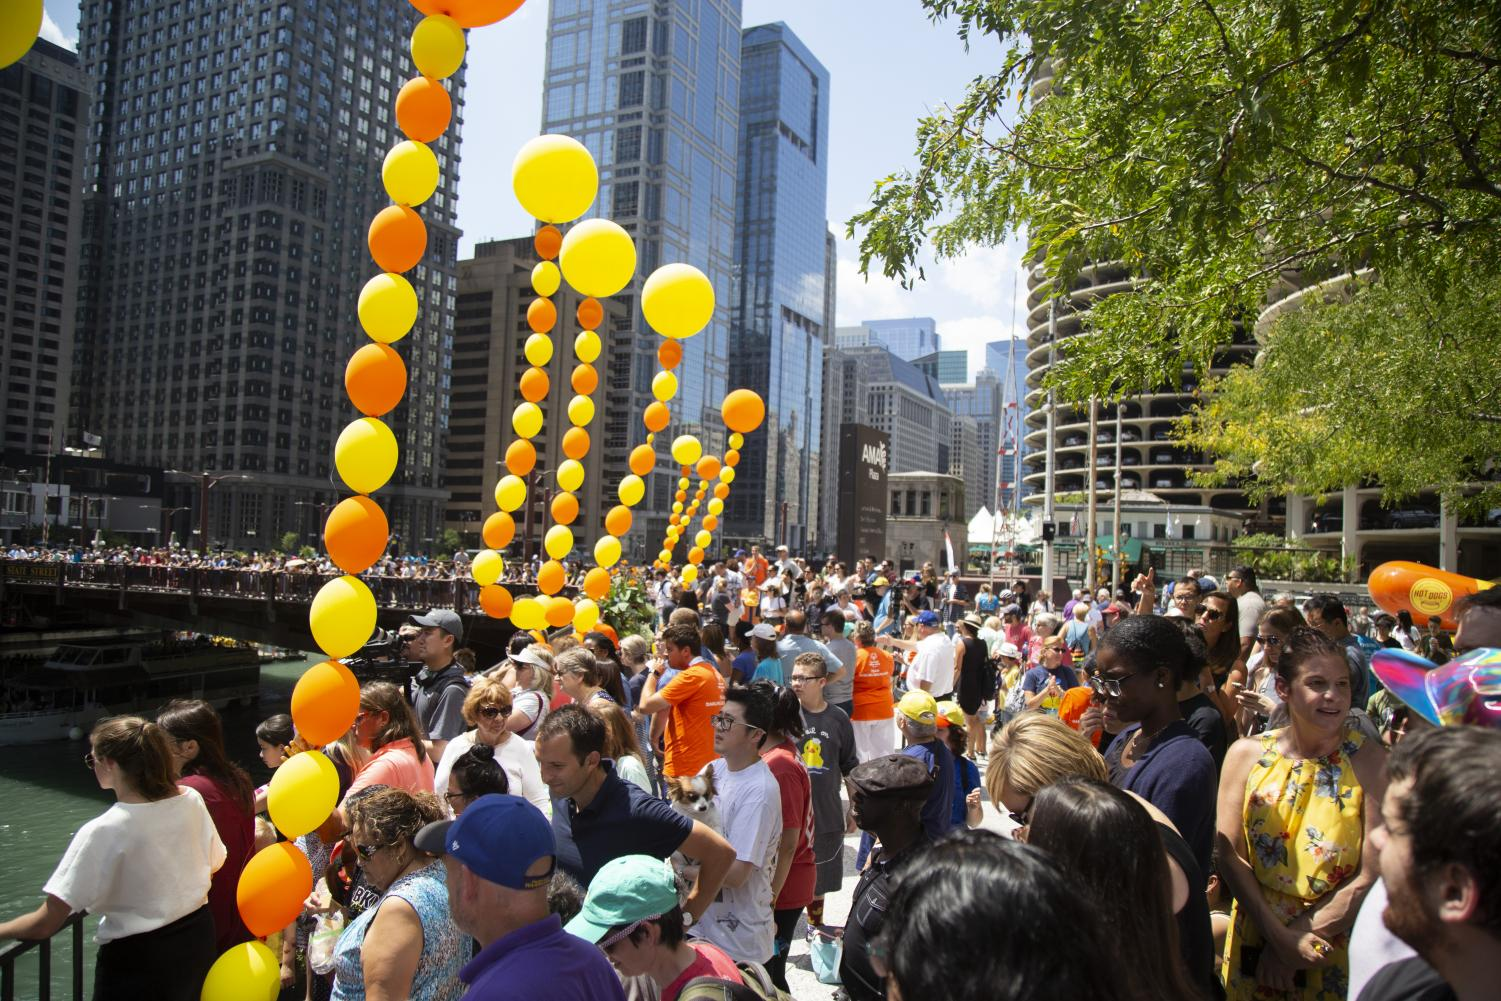 Over+63%2C000+rubber+duckies+were+dumped+into+the+Chicago+River+to+raise+funds+for+the+Illinois+Special+Olympics.